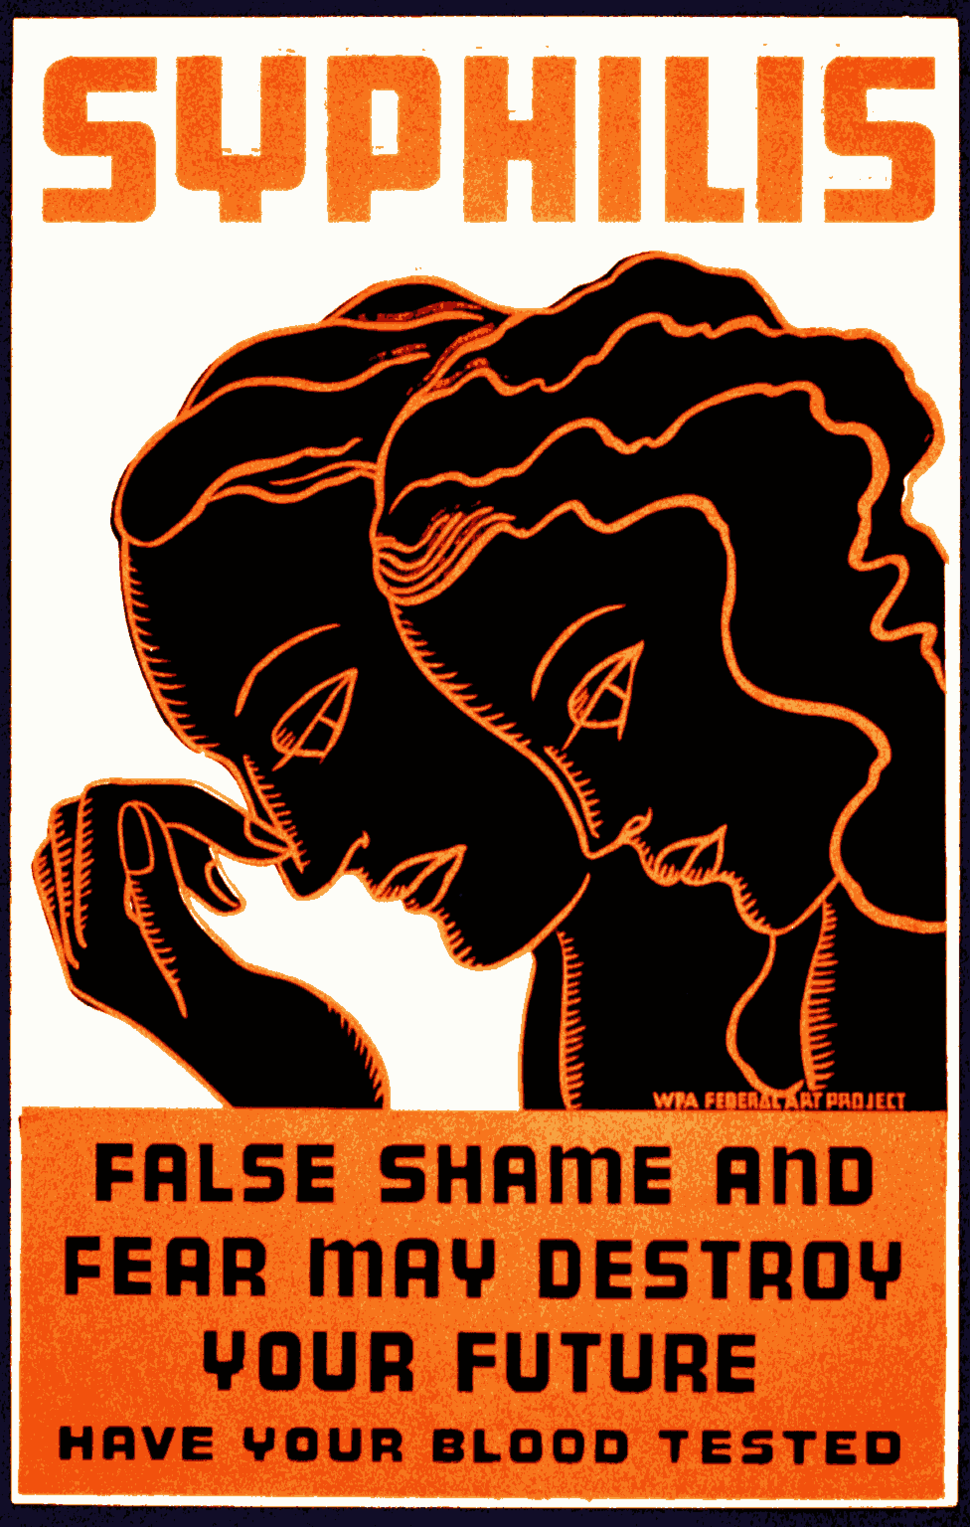 Syphilis false shame and fear may destroy your future